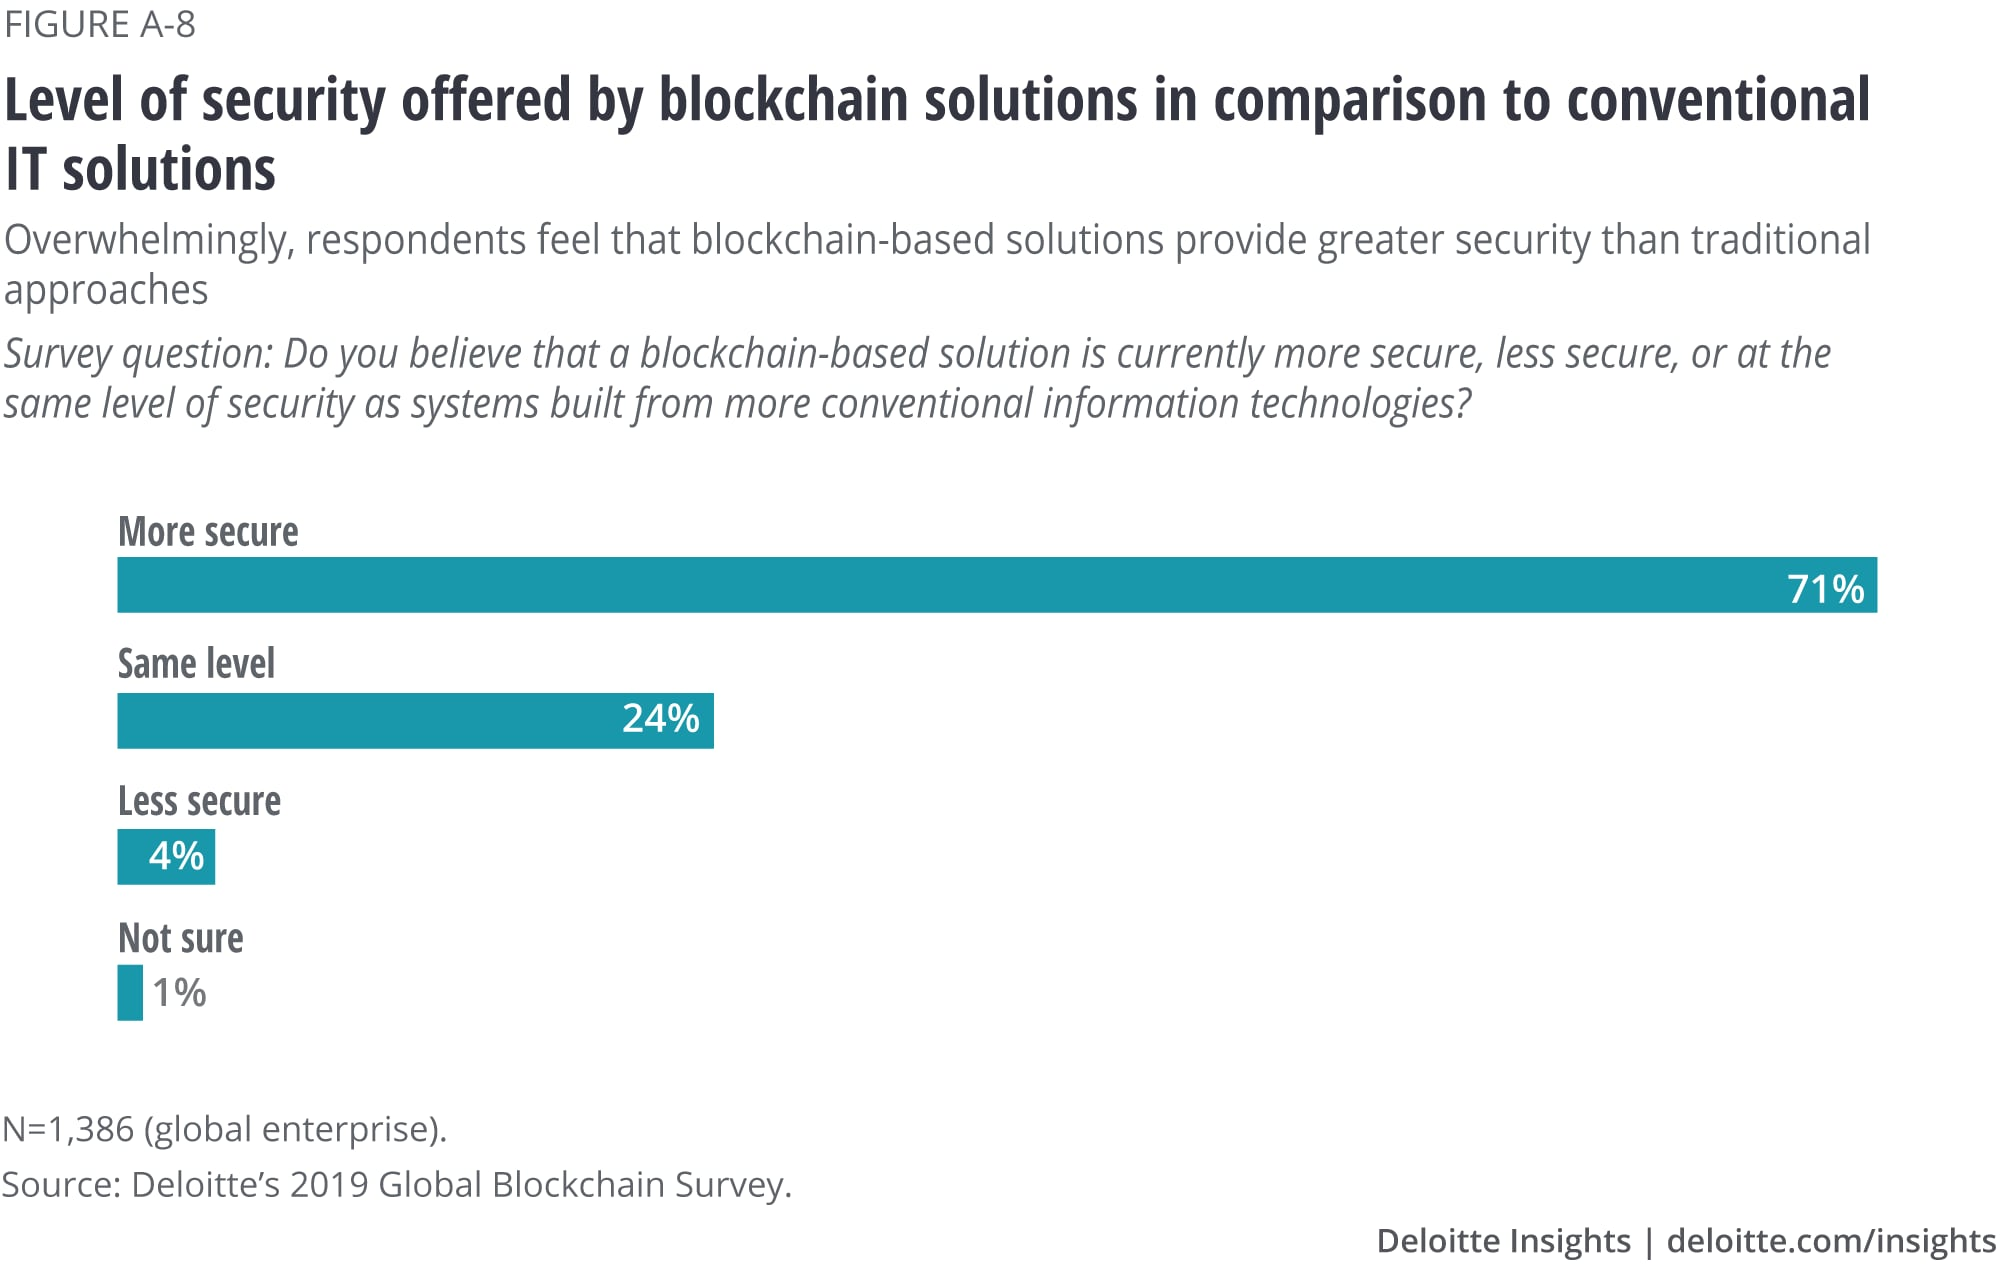 Level of security offered by blockchain solutions in comparison to conventional IT solutions